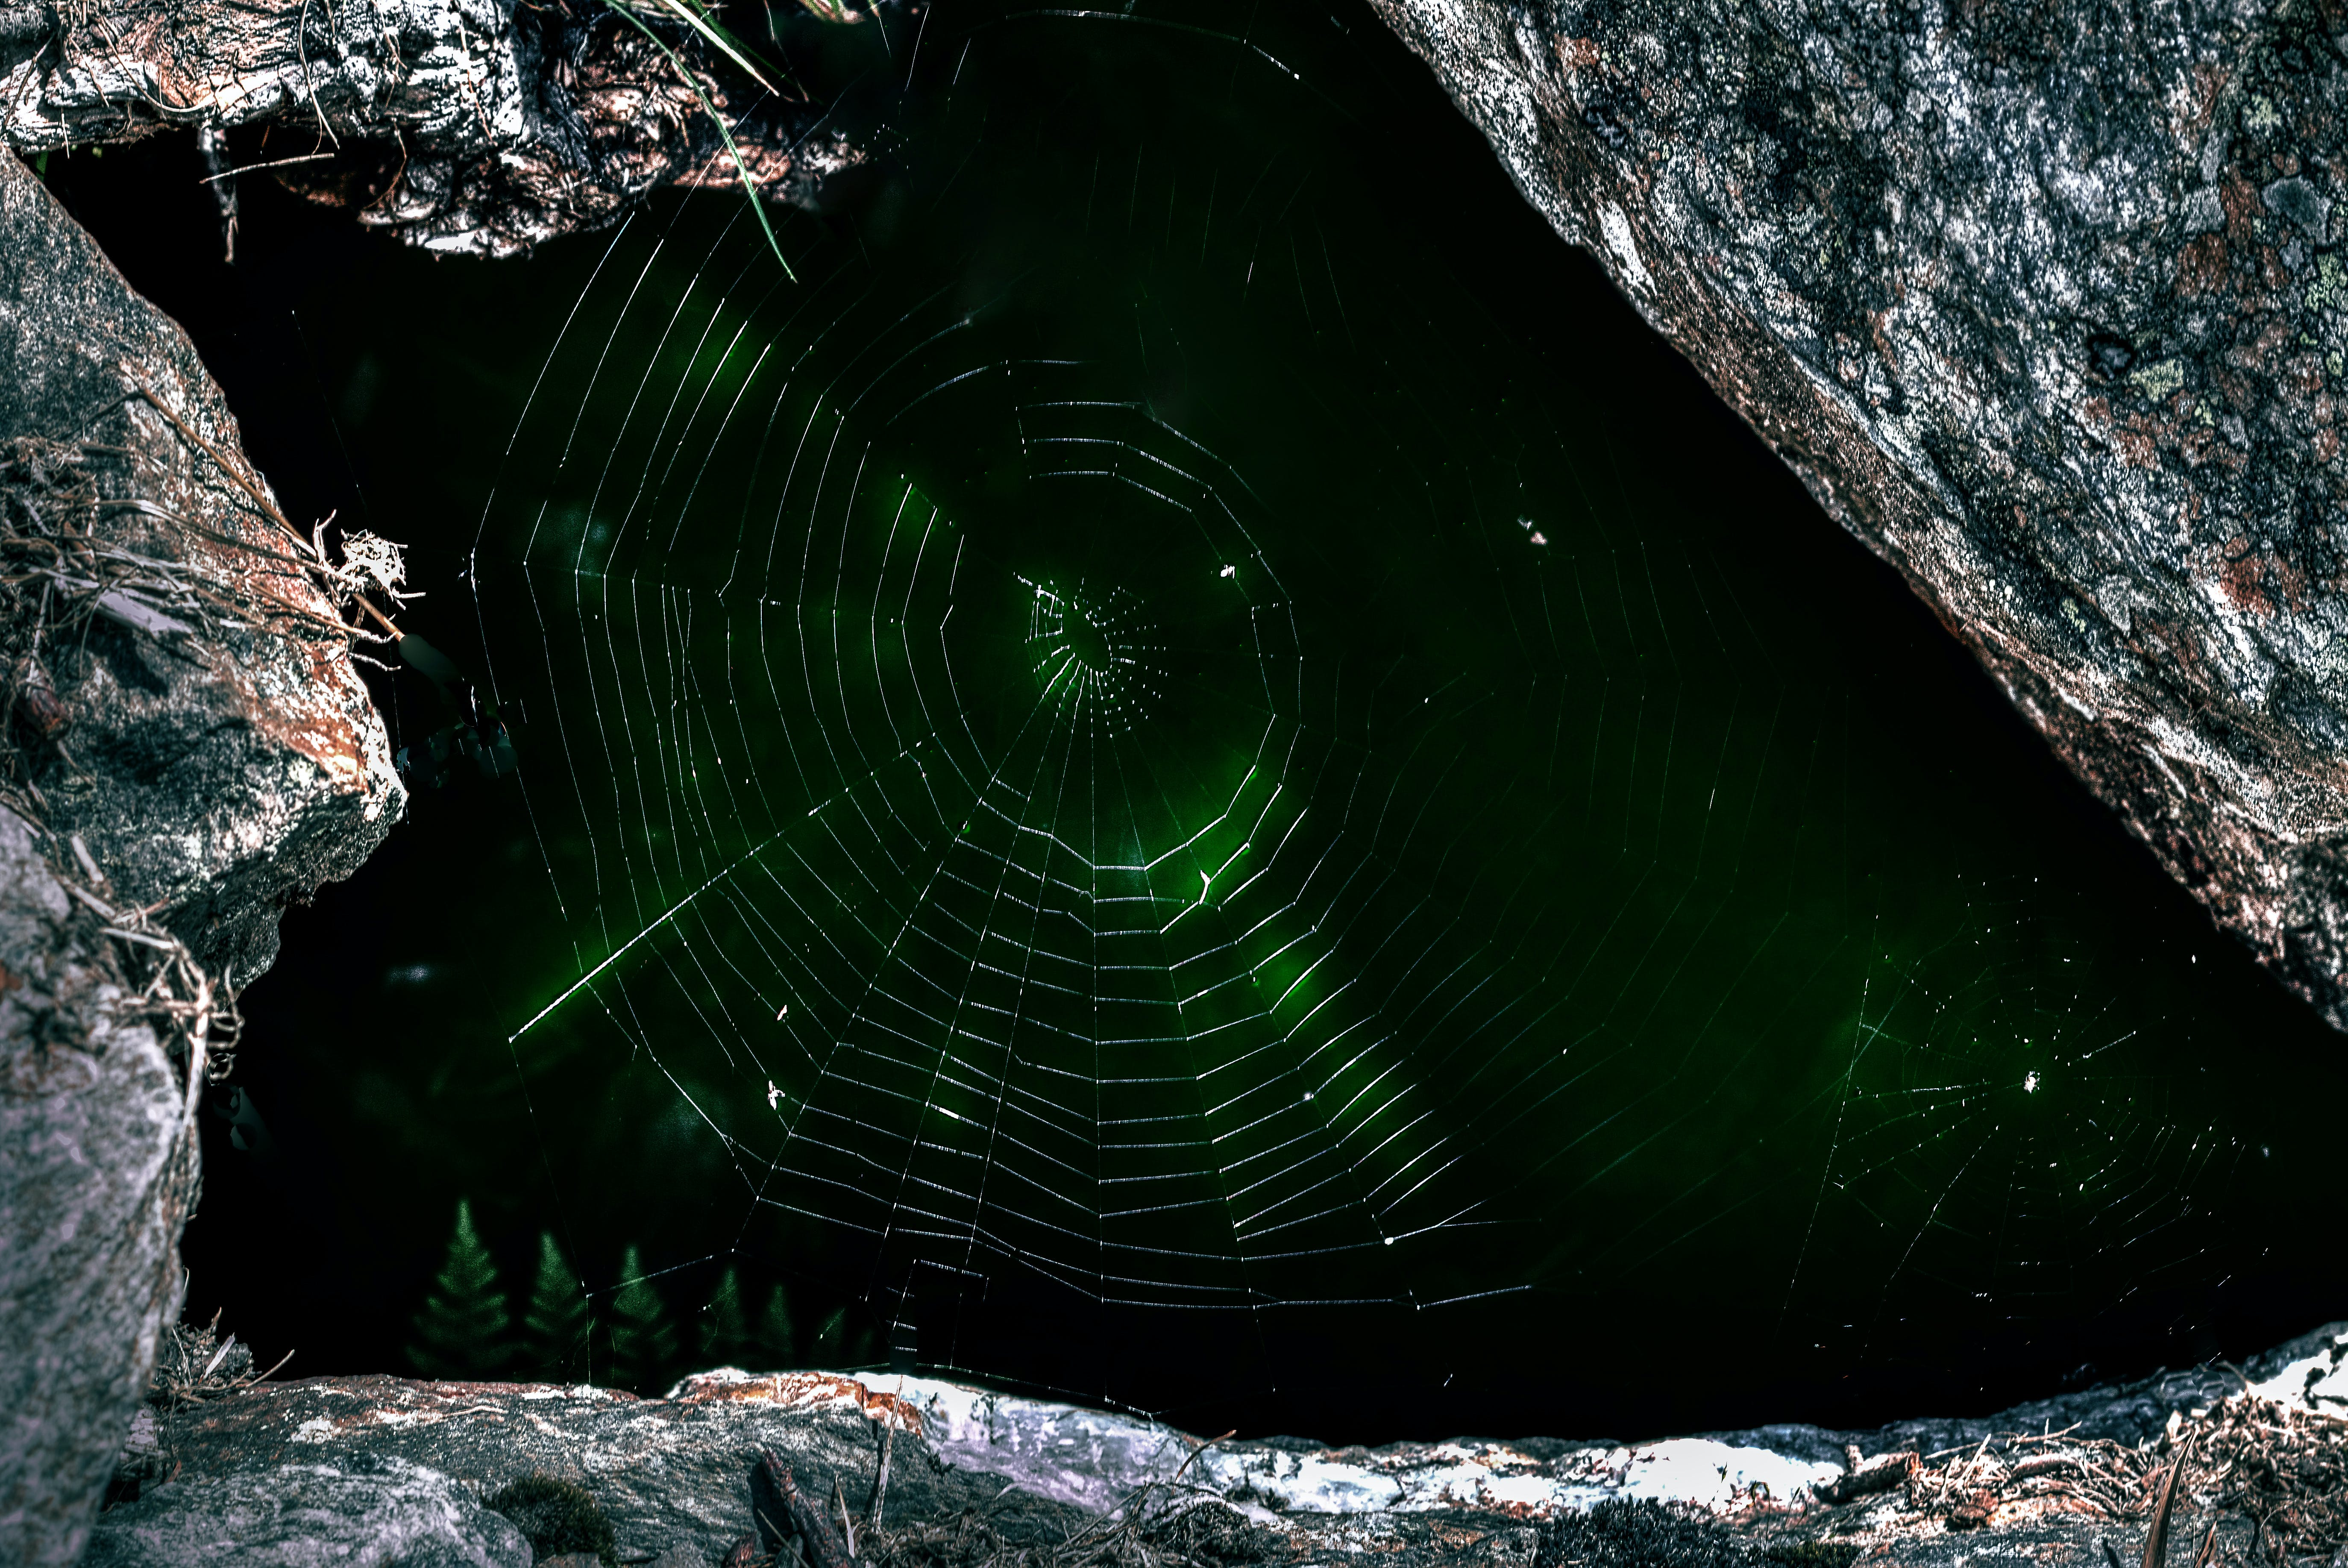 Macro Photograph of Spider's Web